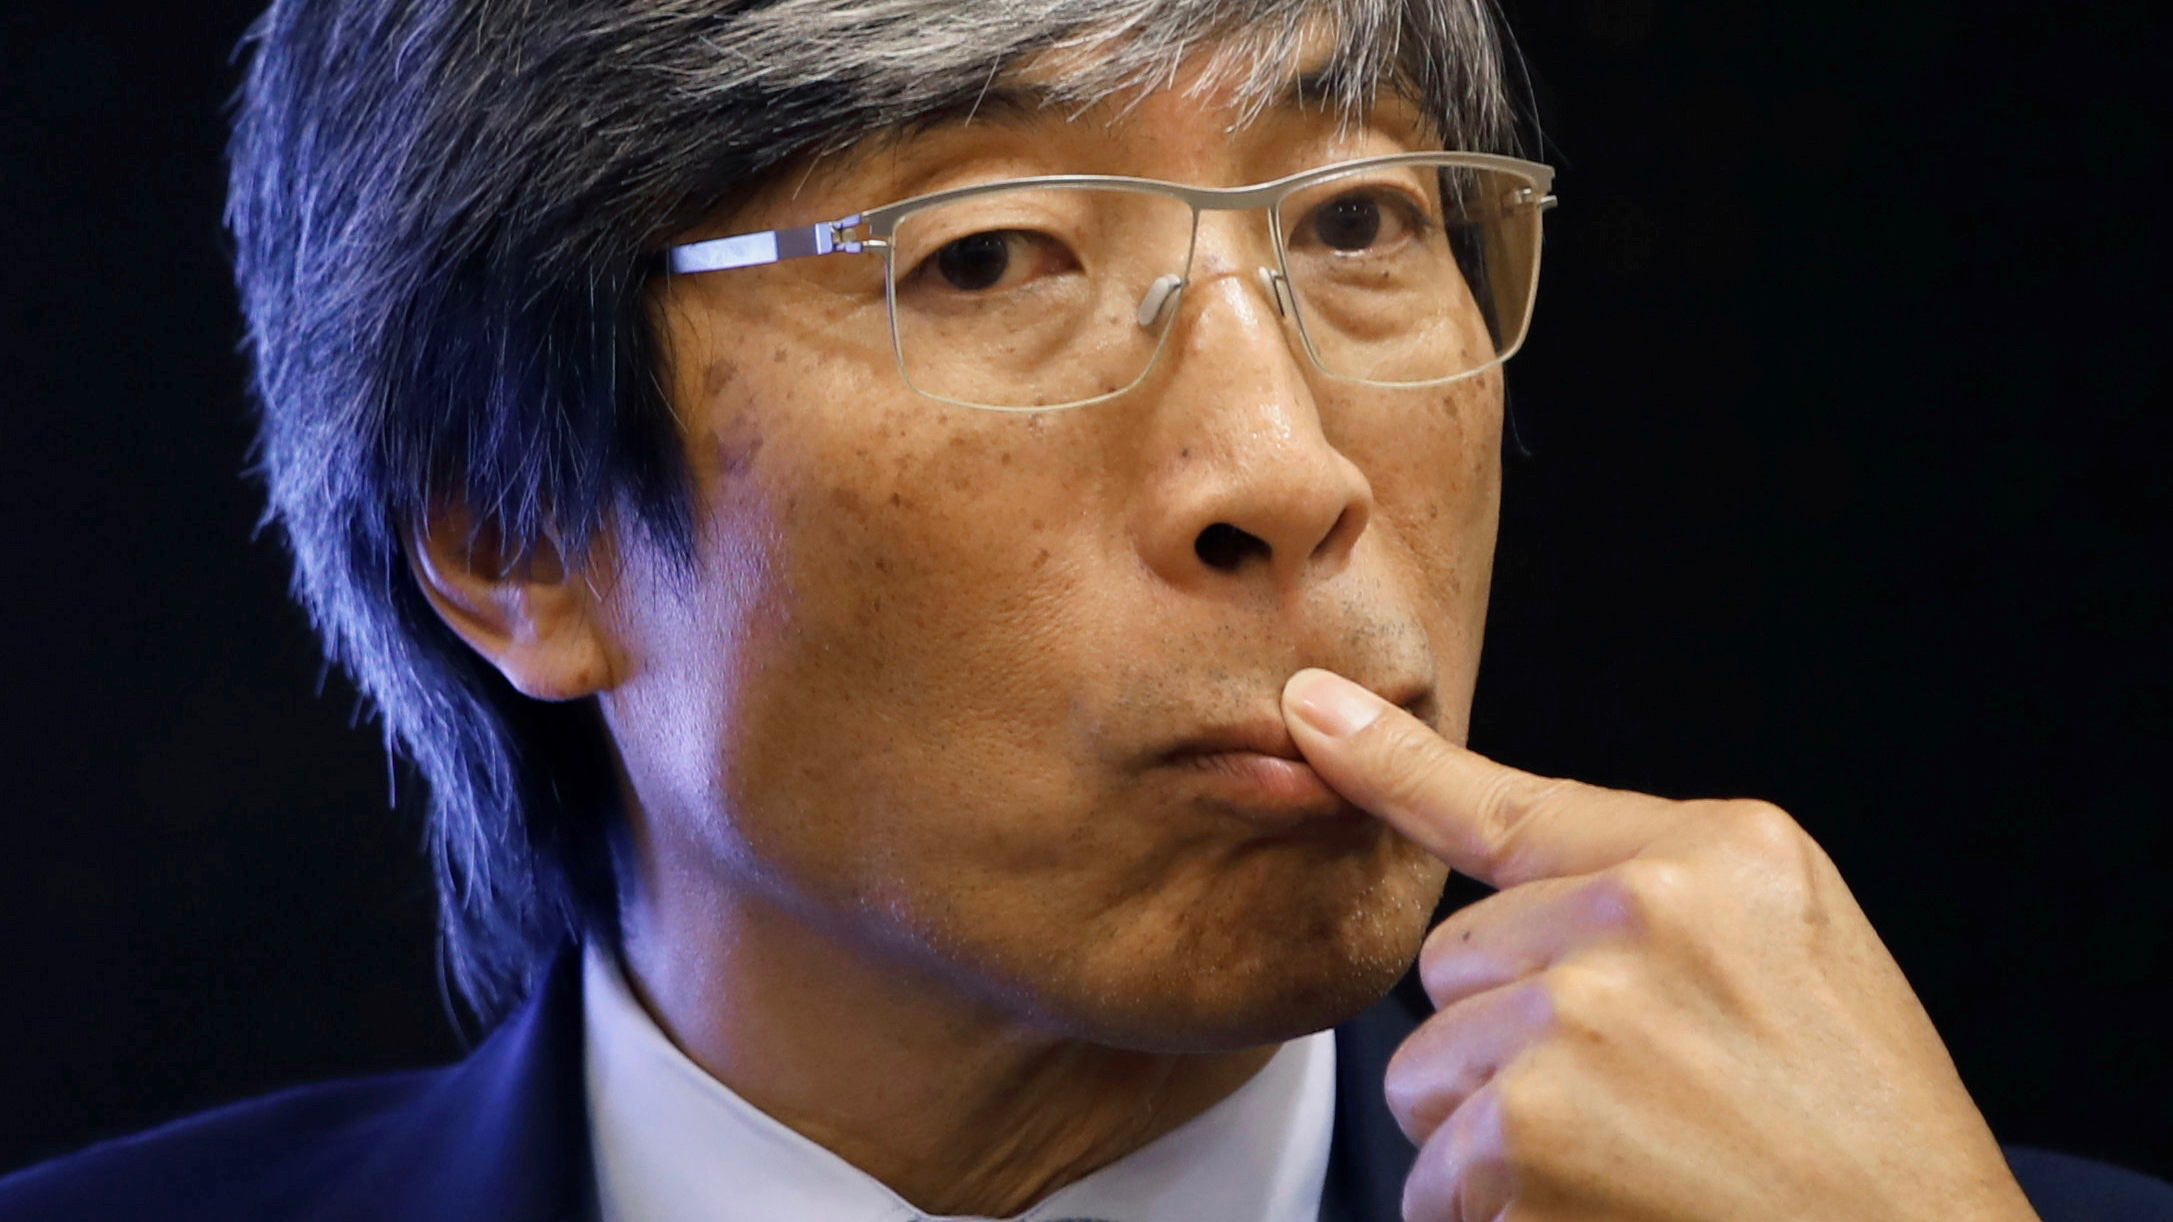 LA Times purchase: South African-born billionaire Patrick Soon-Shiong takes over from Tronc